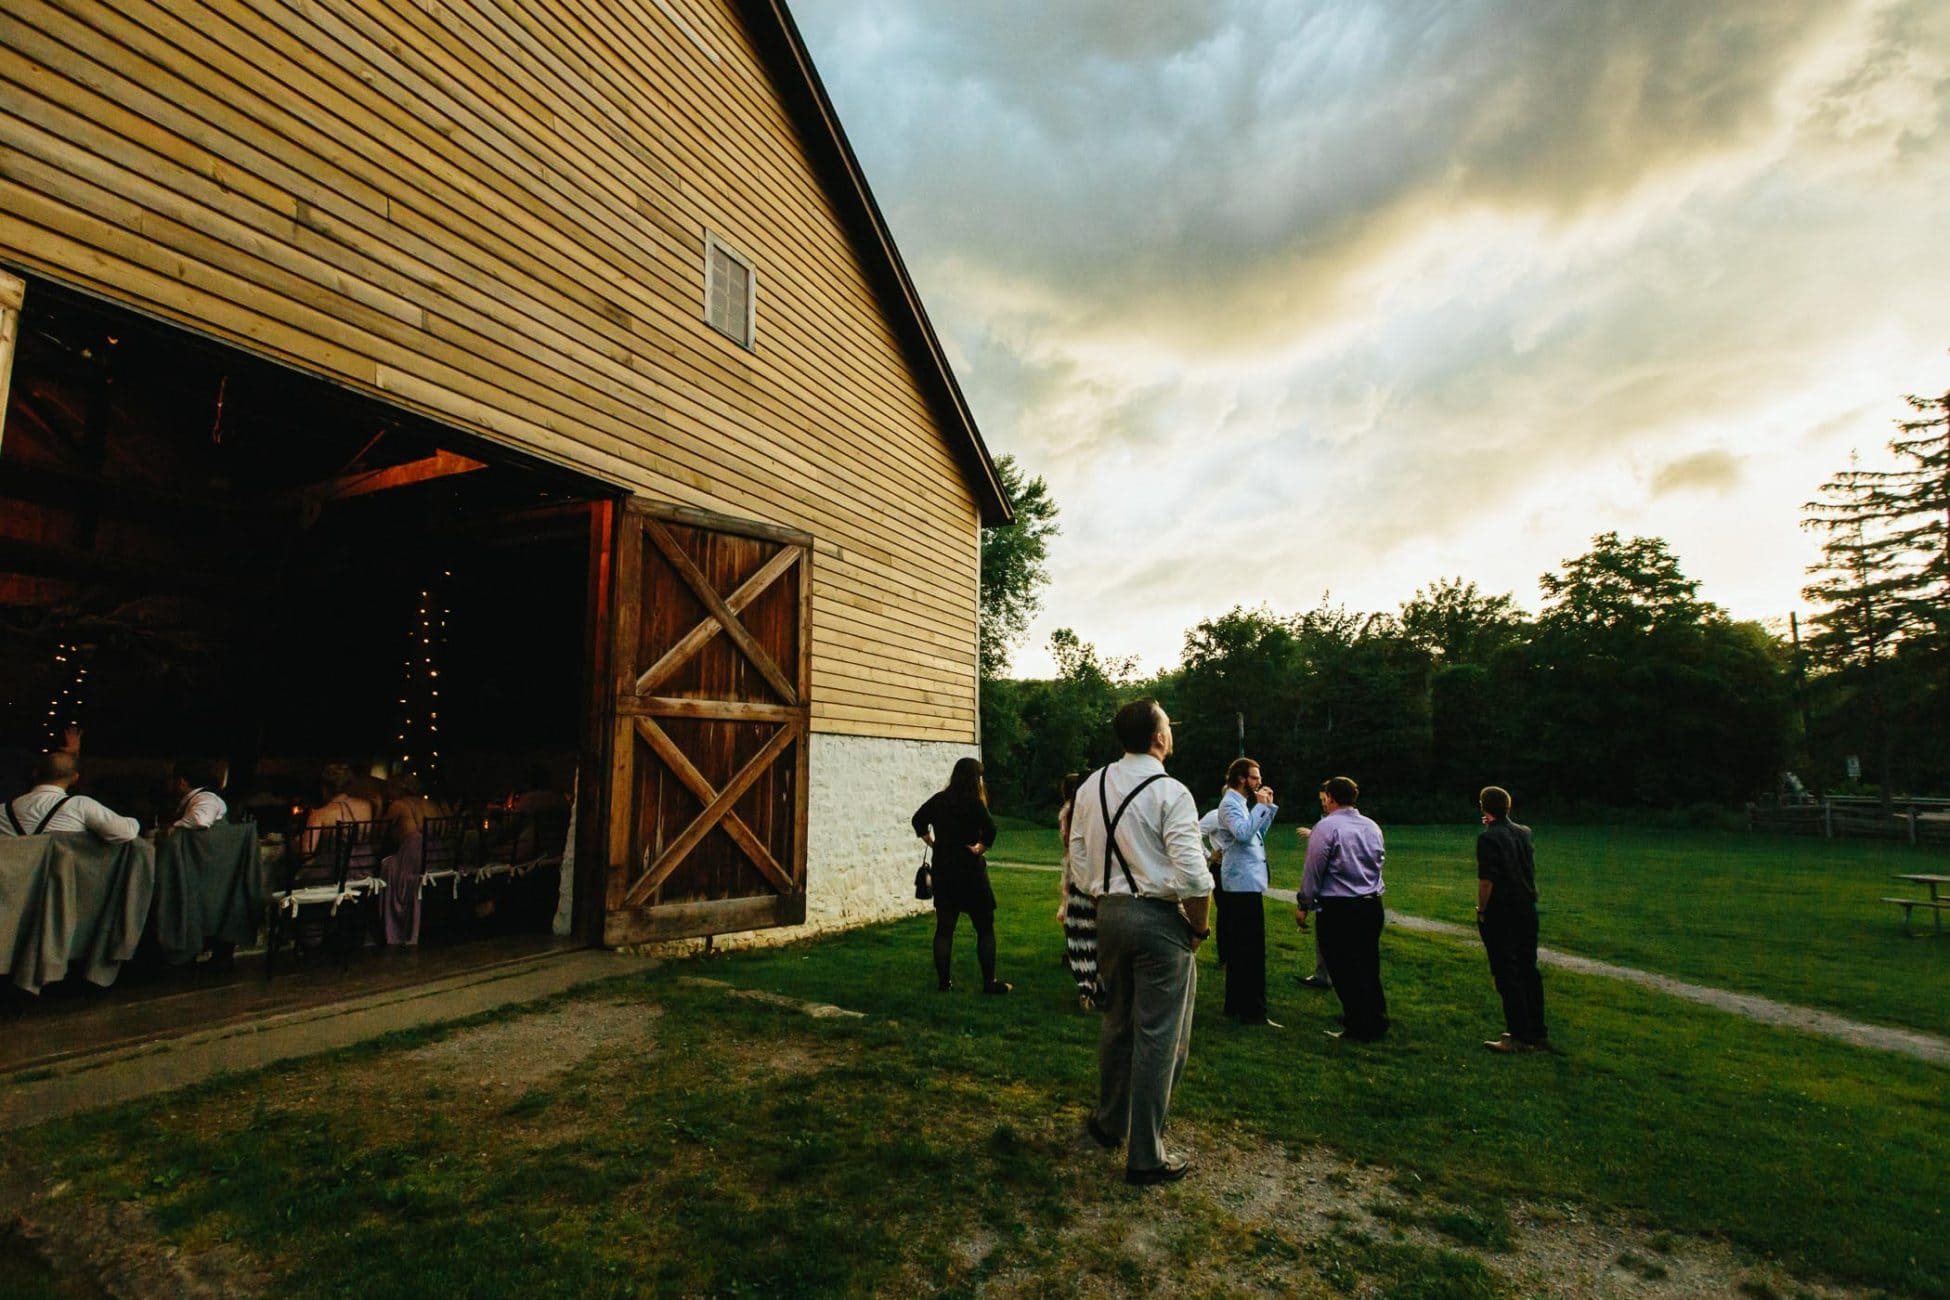 The guests looking at dramatic stormy clouds before sunset outside barn at Ball's Falls in this documentary wedding photograph.